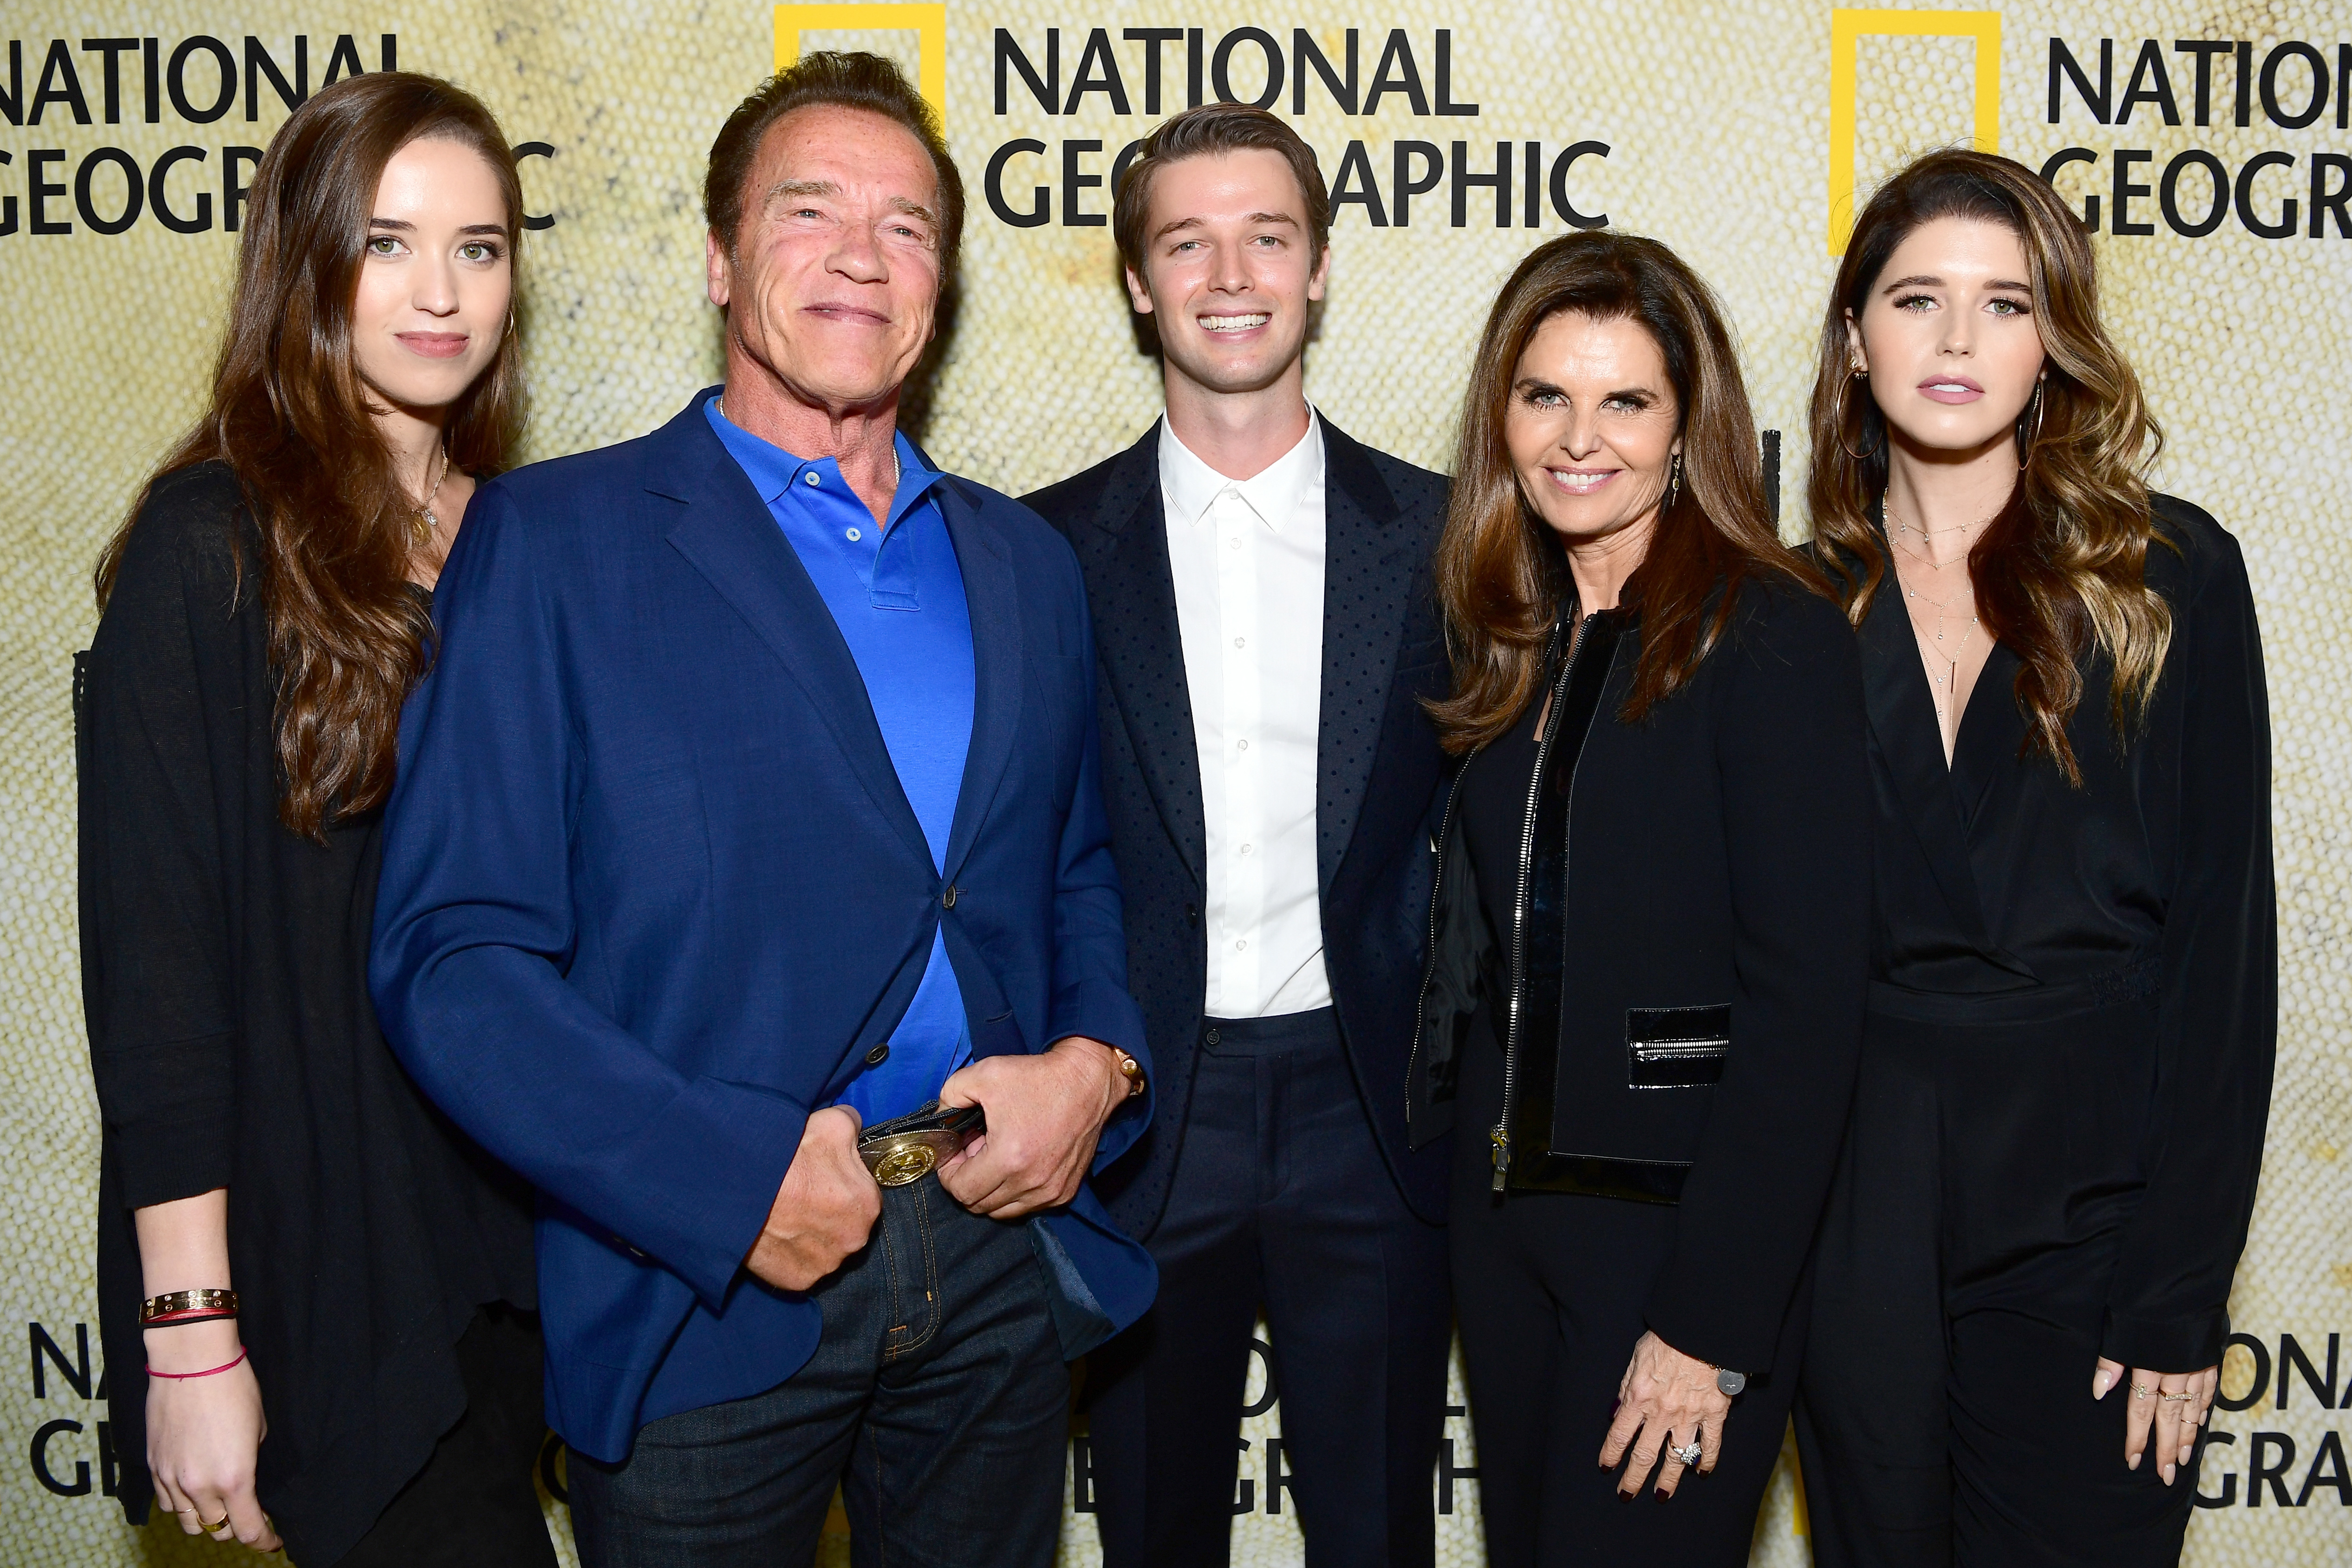 (L-R) Christina Schwarzenegger, Arnold Schwarzenegger, Patrick Schwarzenegger, Maria Shriver and Katherine Schwarzenegger attend the premiere of National Geographic's 'The Long Road Home' at Royce Hall on October 30, 2017 in Los Angeles, California.